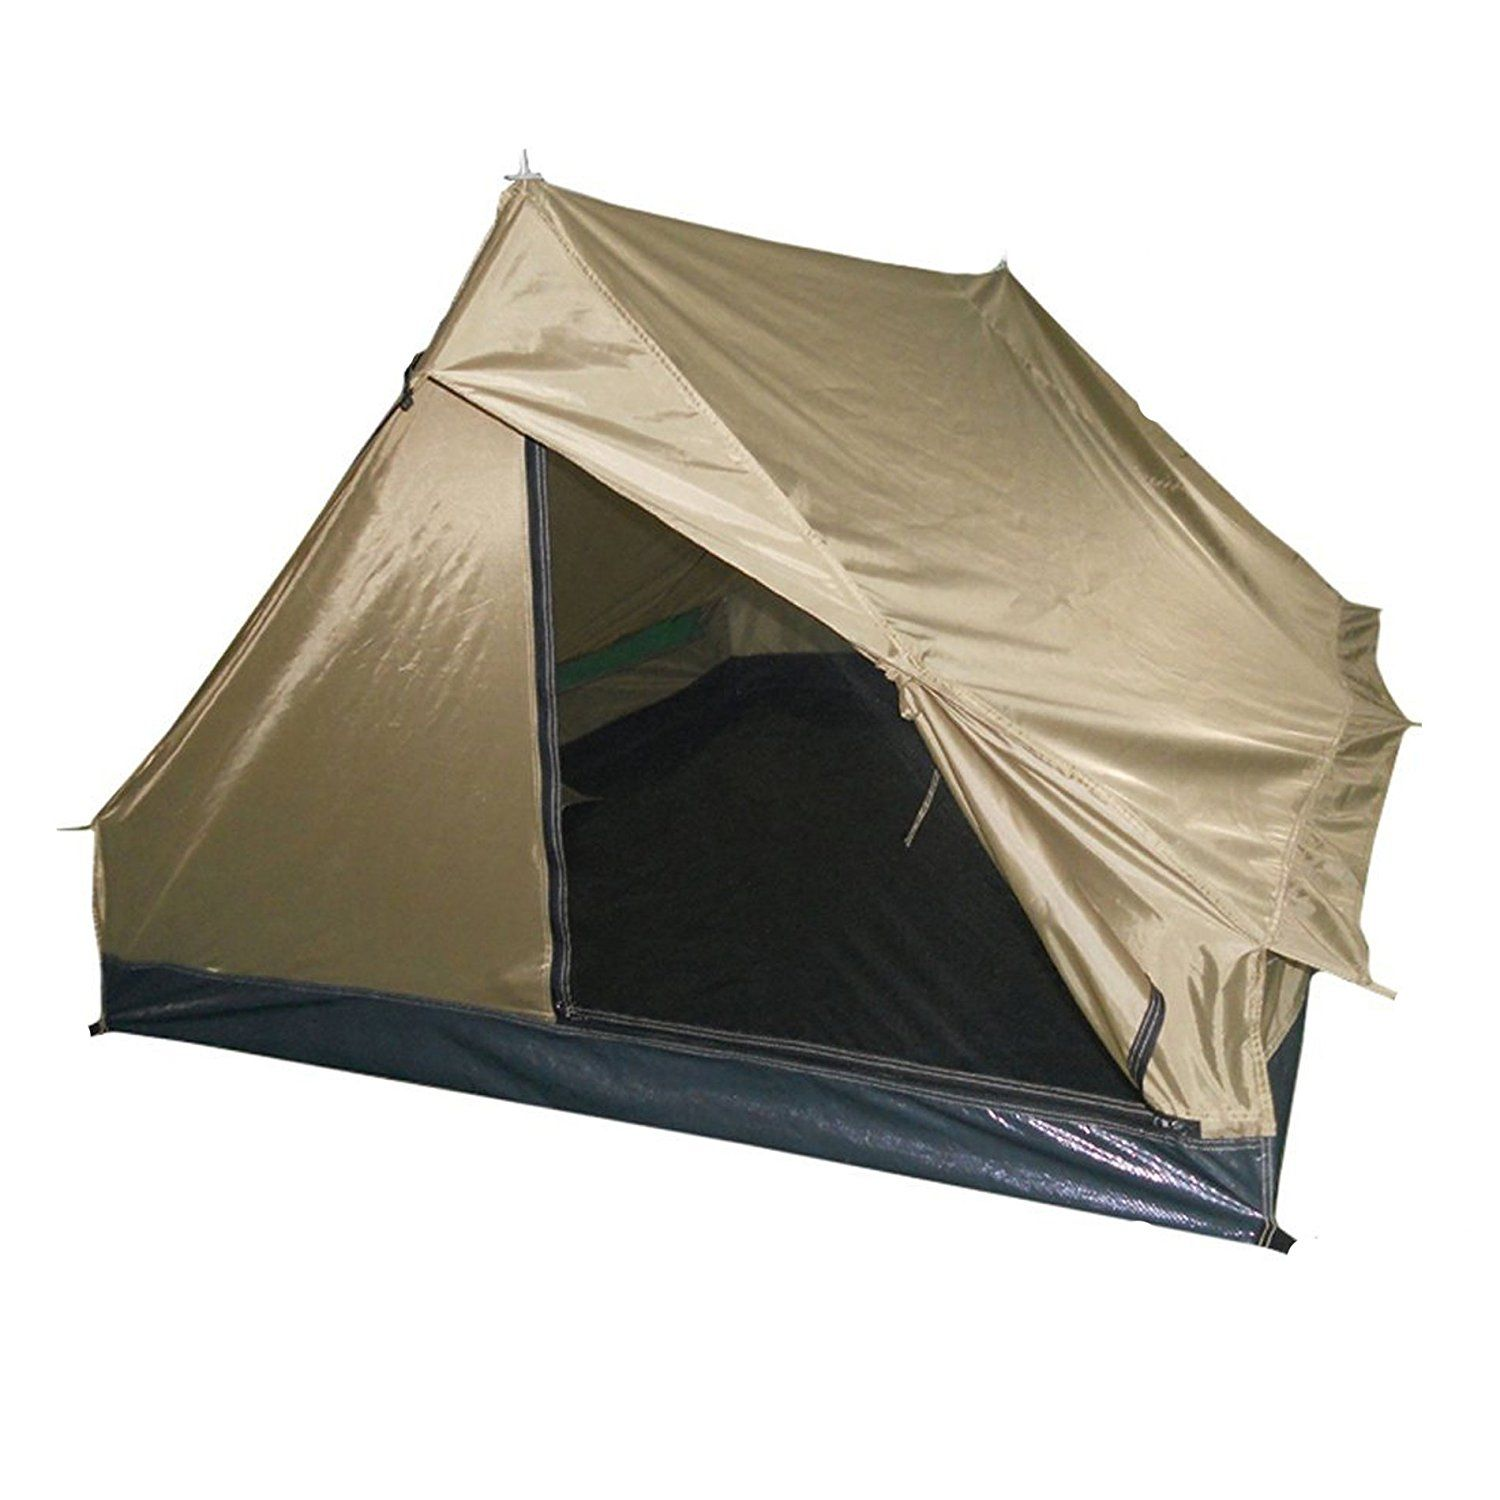 Mil-Tec Mini Pack Standard Two Man Tent Coyote * Startling review available here   sc 1 st  Pinterest & Mil-Tec Mini Pack Standard Two Man Tent Coyote * Startling review ...